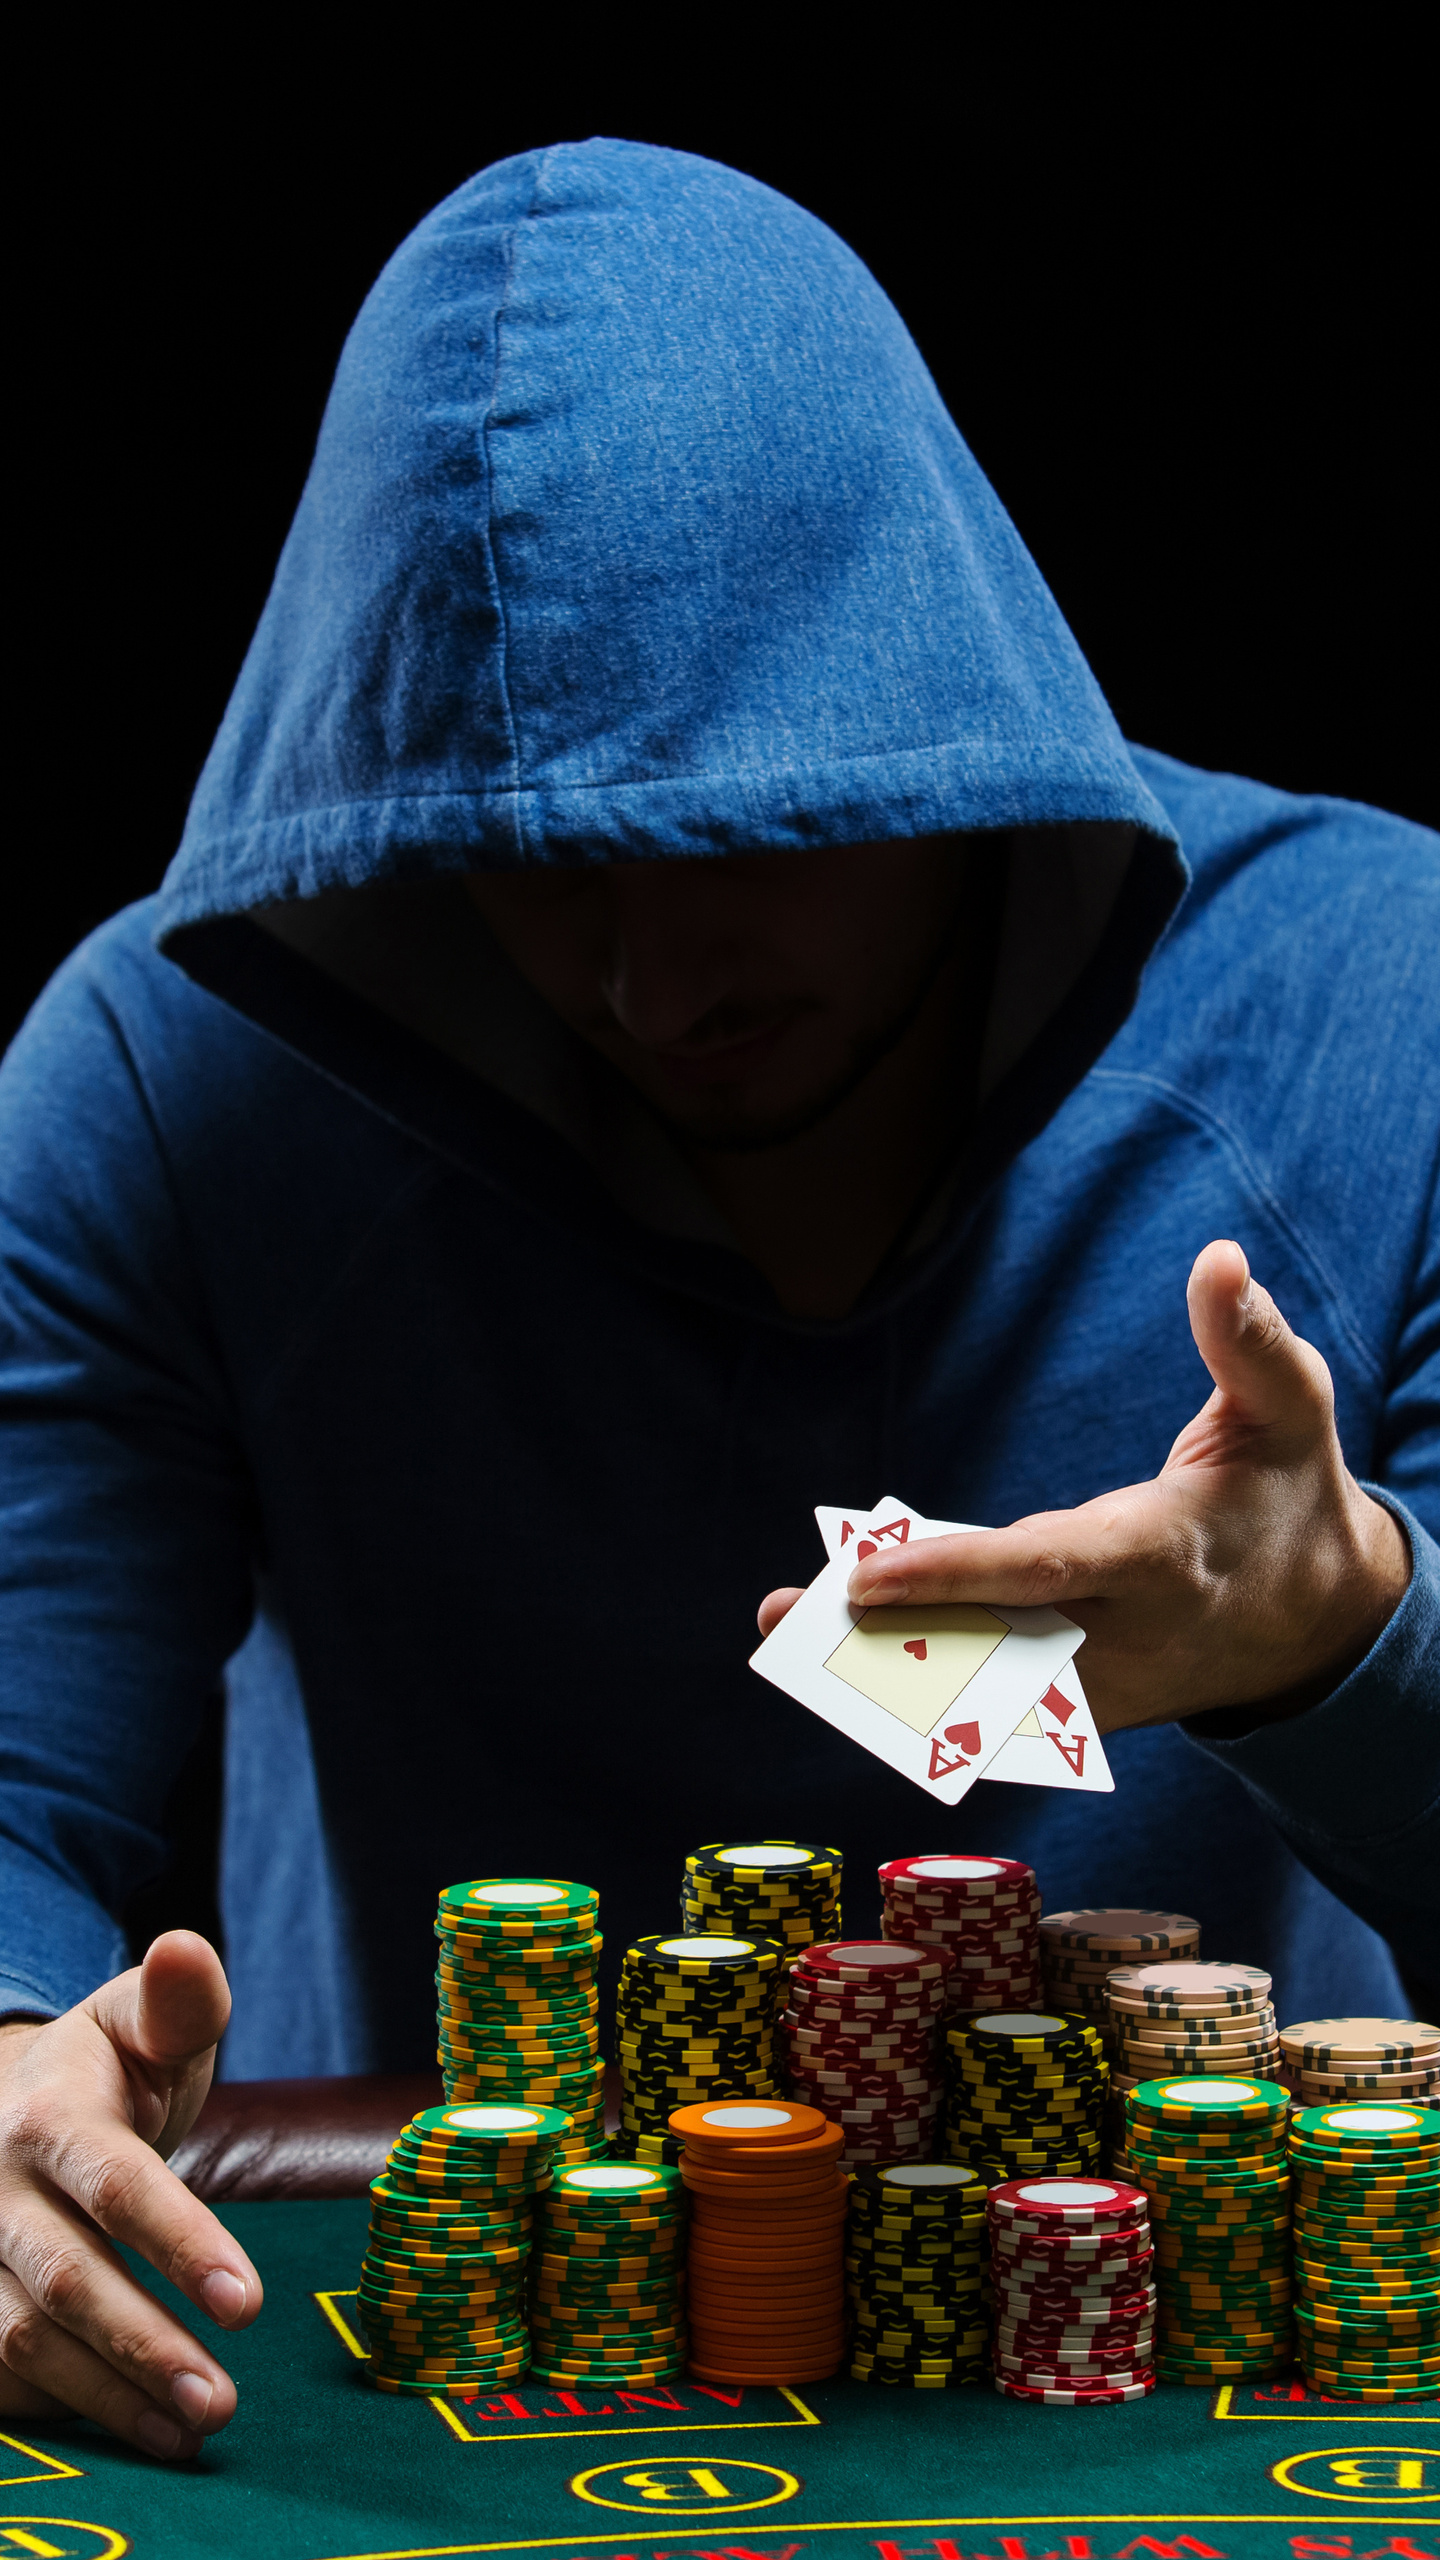 1440x2560 Poker Player 5k Samsung Galaxy S6 S7 Google Pixel Xl Nexus 6 6p Lg G5 Hd 4k Wallpapers Images Backgrounds Photos And Pictures